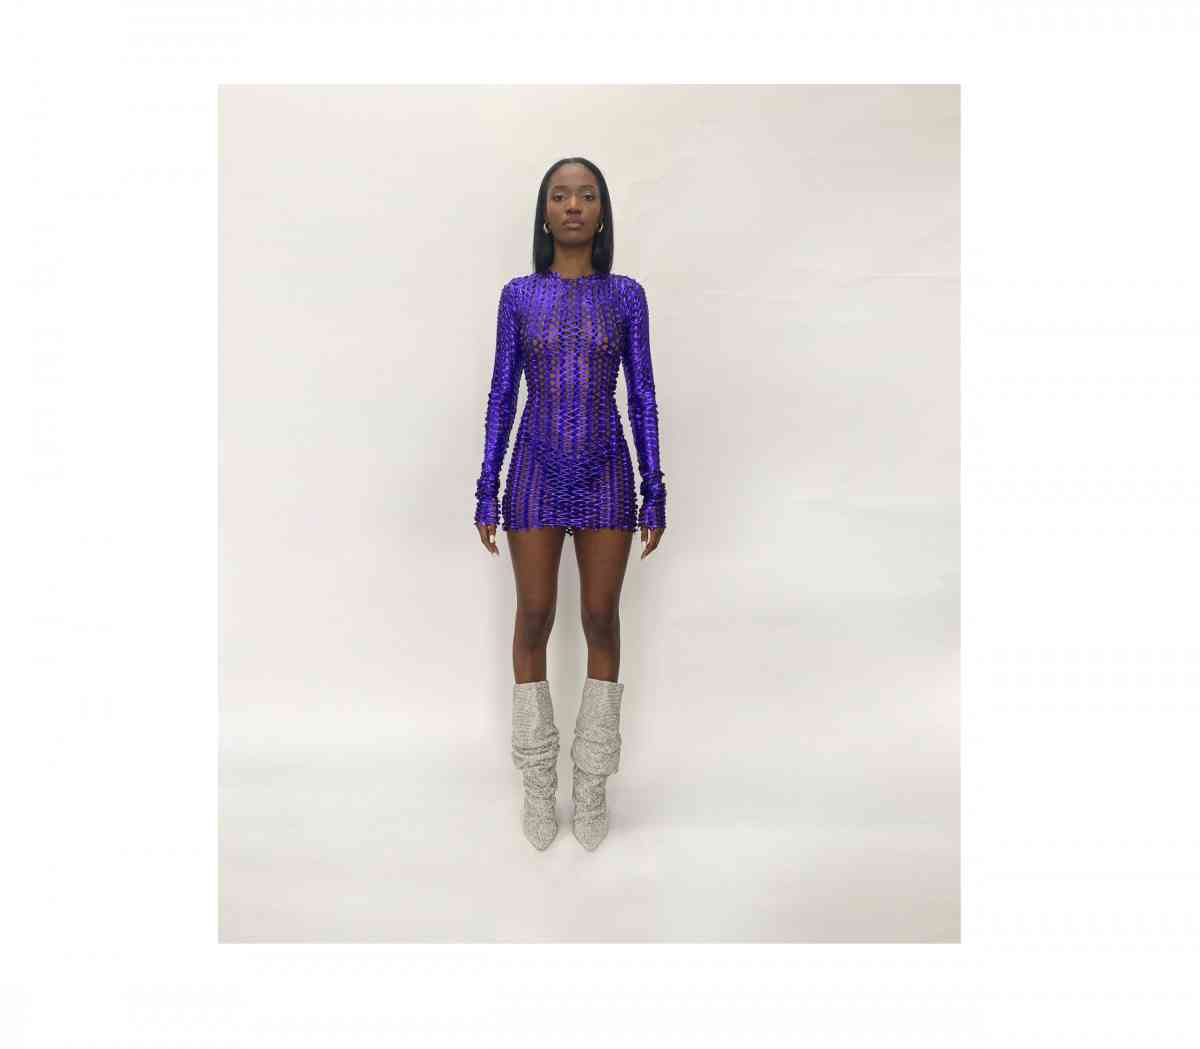 Kylie Jenner, purple  mini dress, fishnet, FEMME  mini dress, white Bottega Veneta sandals, sexy, extra long sleeves, crew neck, formfitting, display, flattering